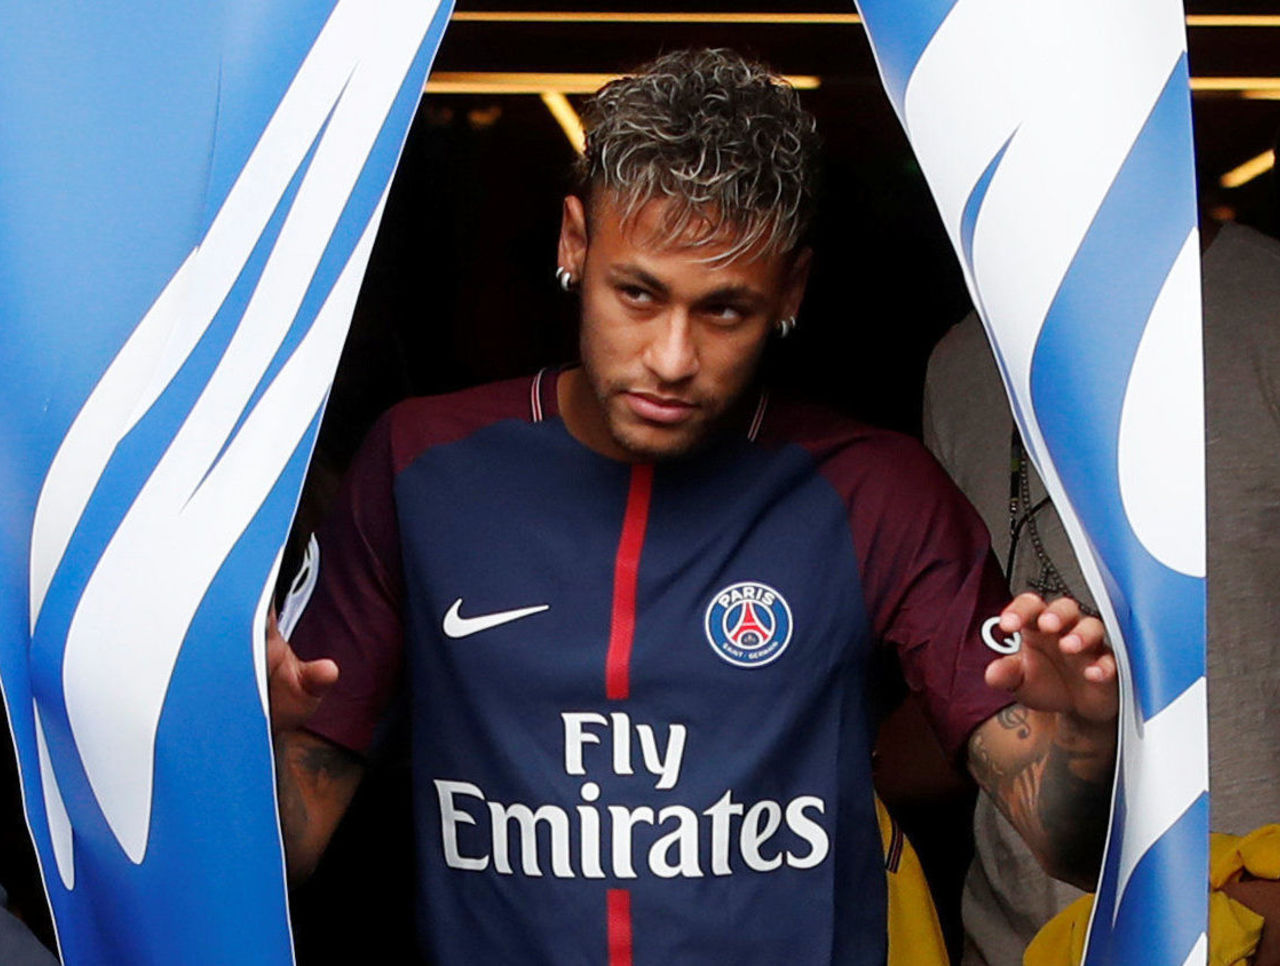 Neymar unveiled in PSG